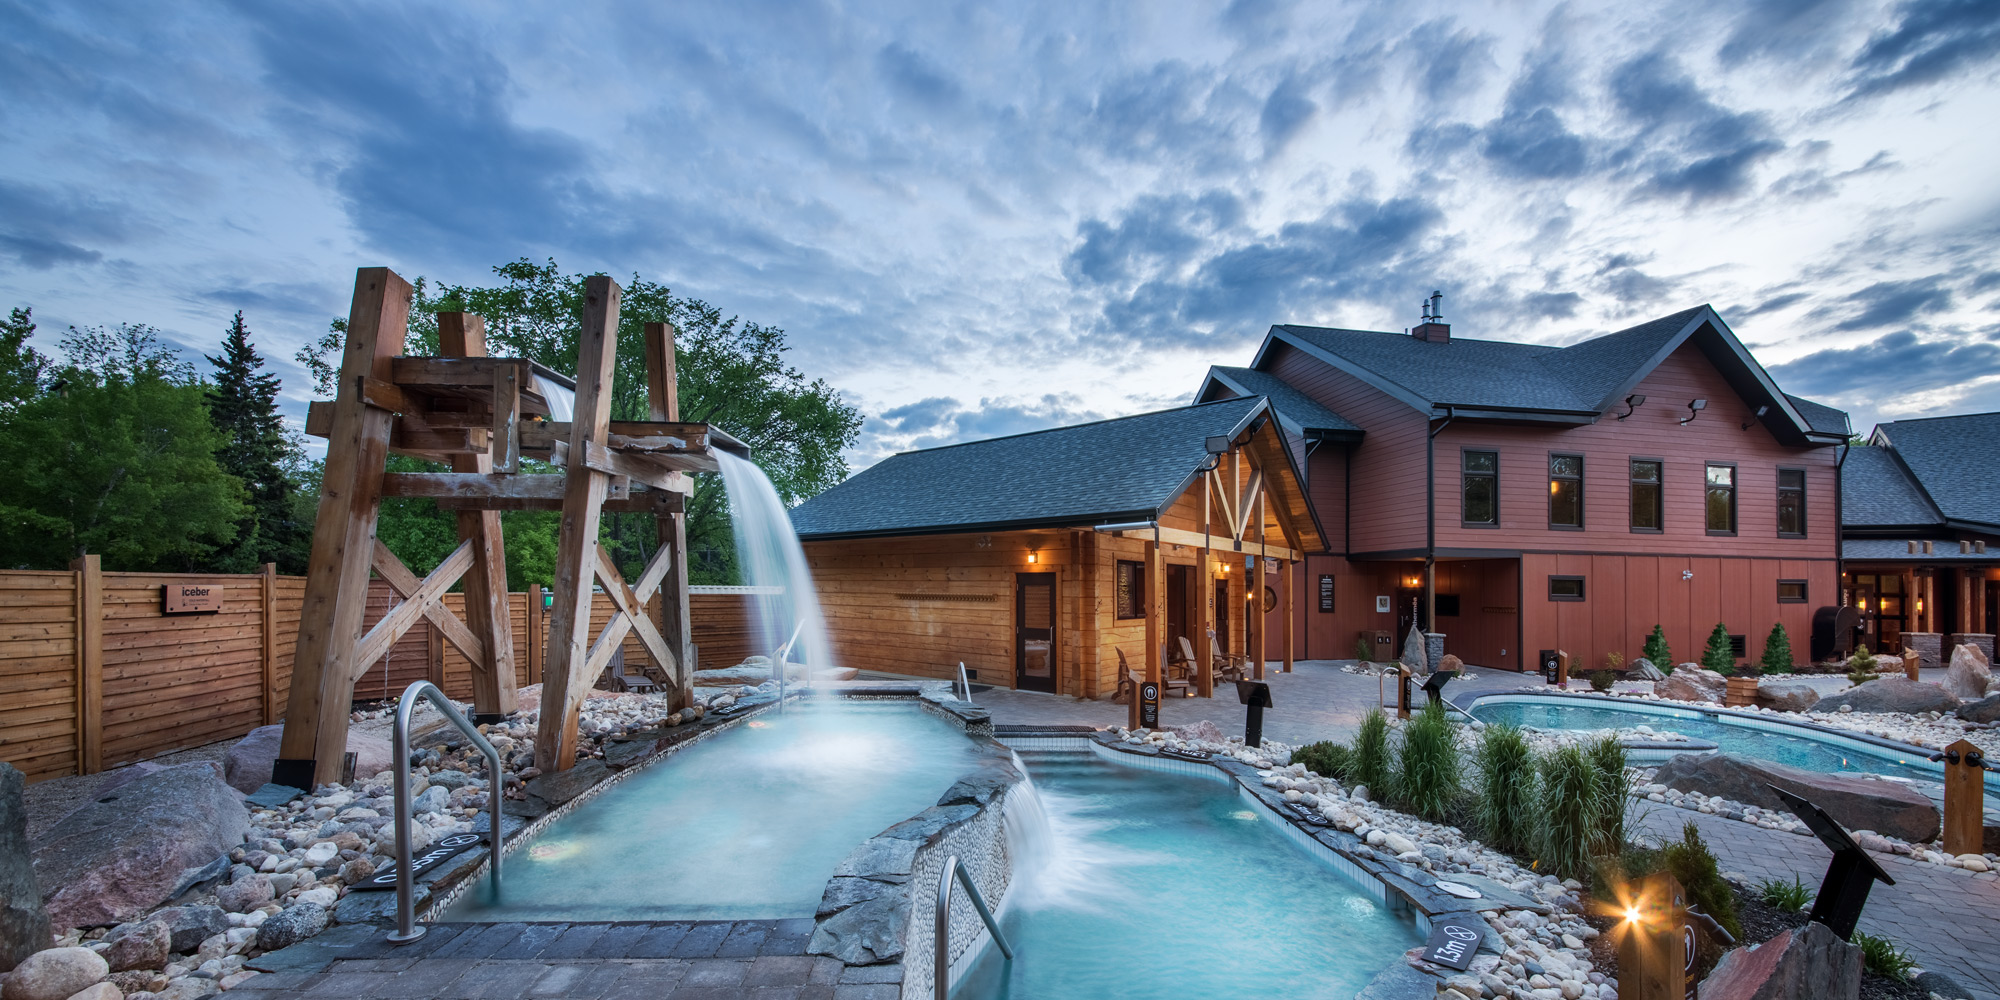 the cold and temperate pools thermea saunas massages. Black Bedroom Furniture Sets. Home Design Ideas